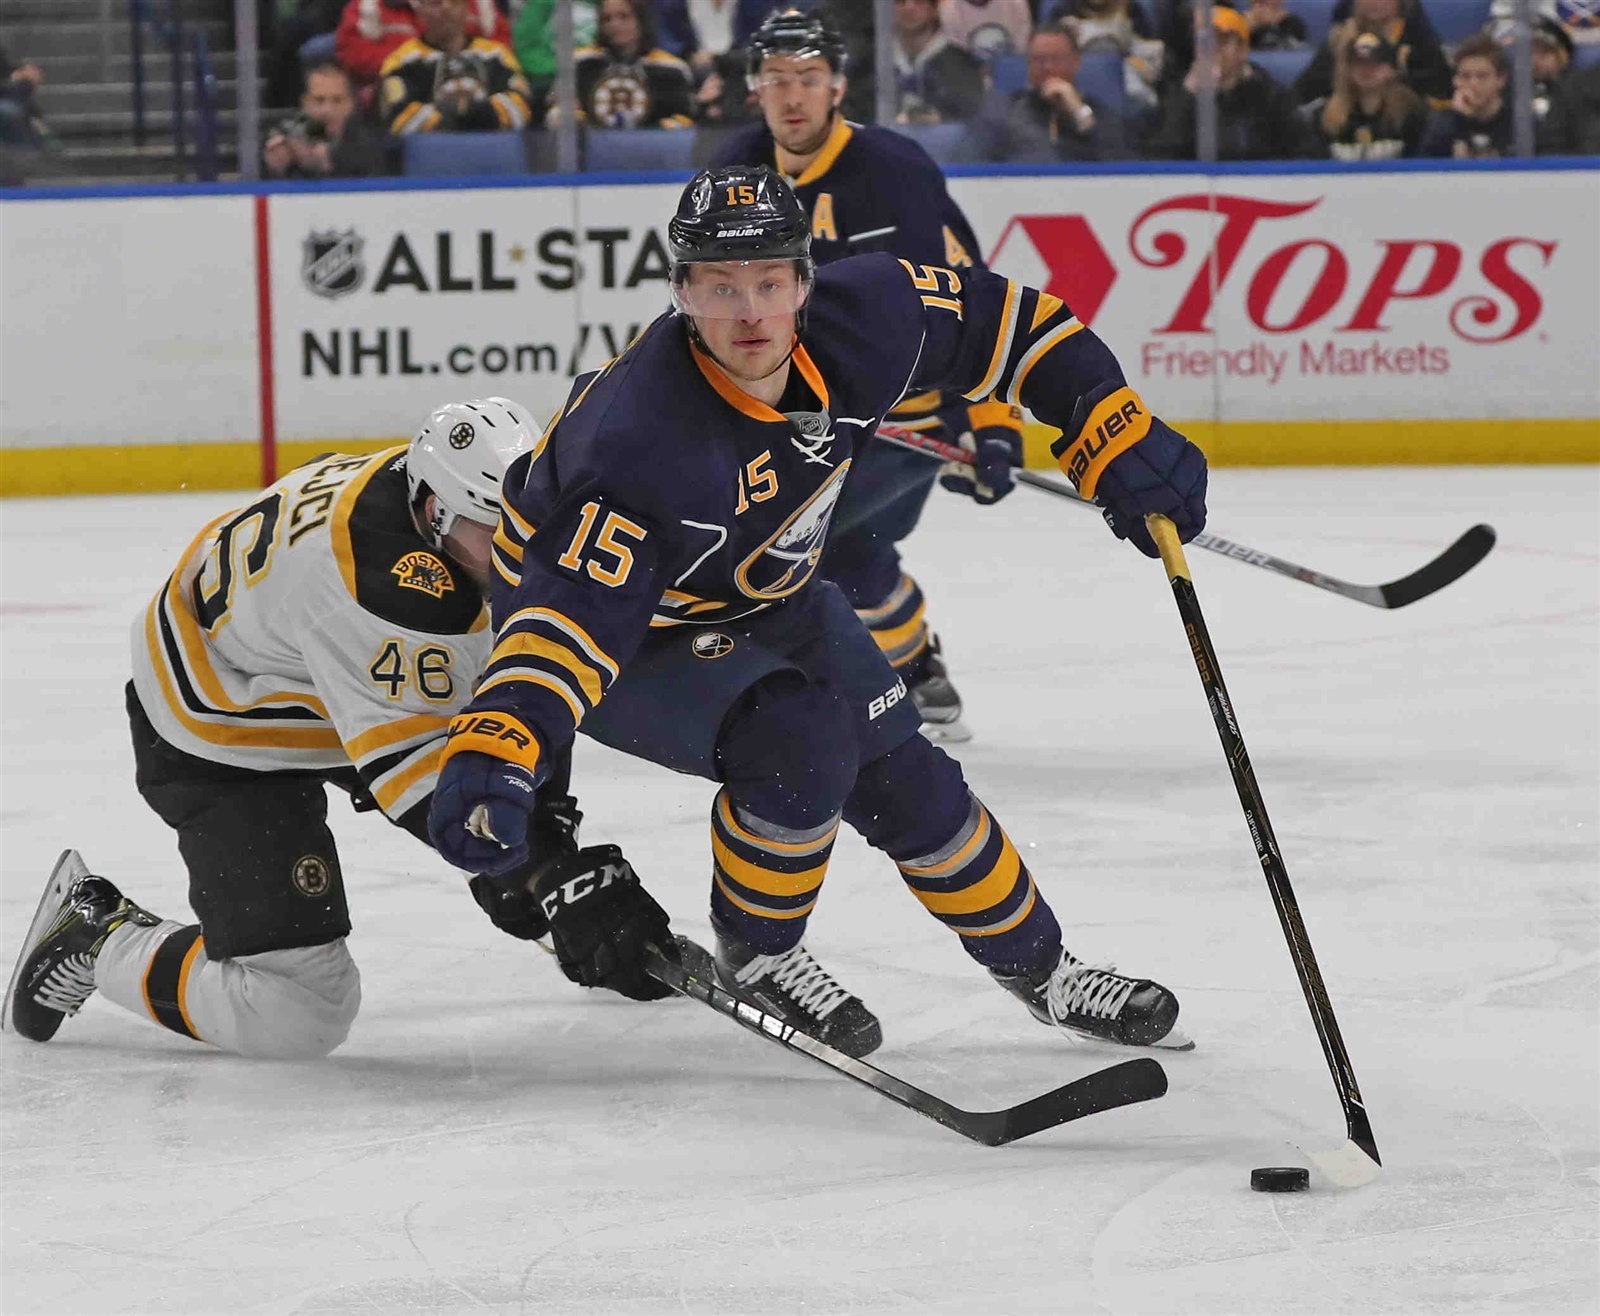 Jack Eichel has inspired the Sabres with his words and goals. (James P. McCoy/Buffalo News)